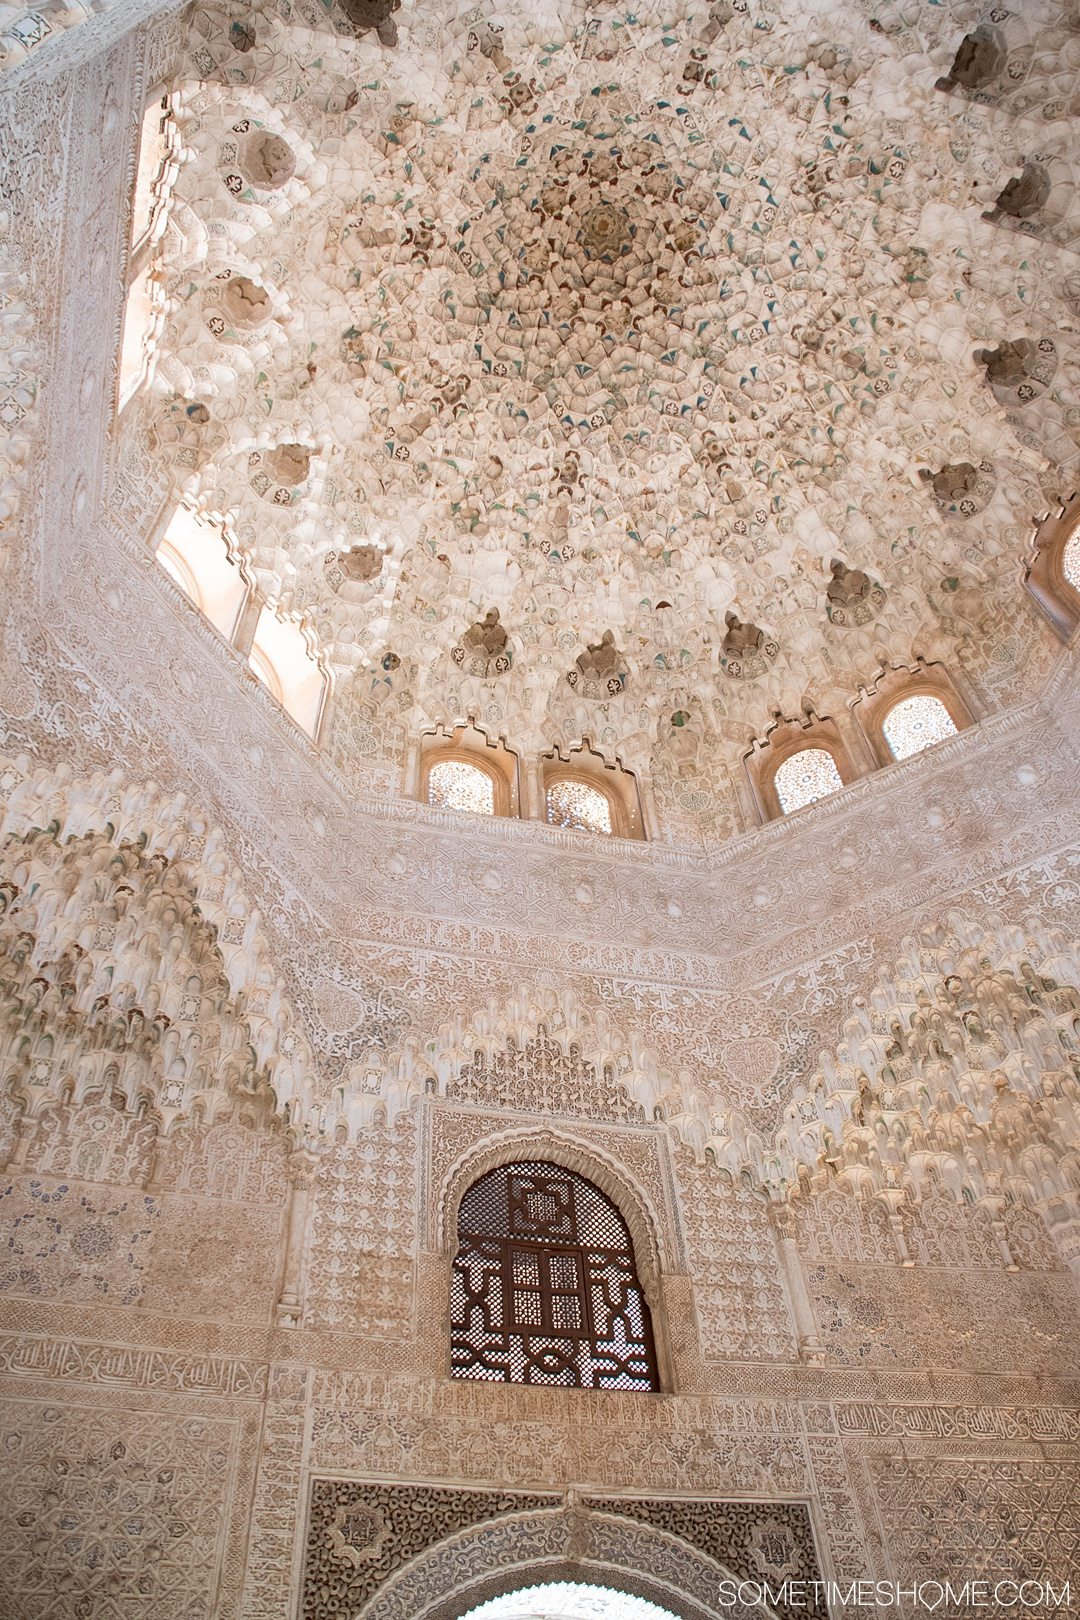 One Perfect Day in Granada Spain. Photos and itinerary on Sometimes Home travel blog. Picture of the Alhambra palace interior.